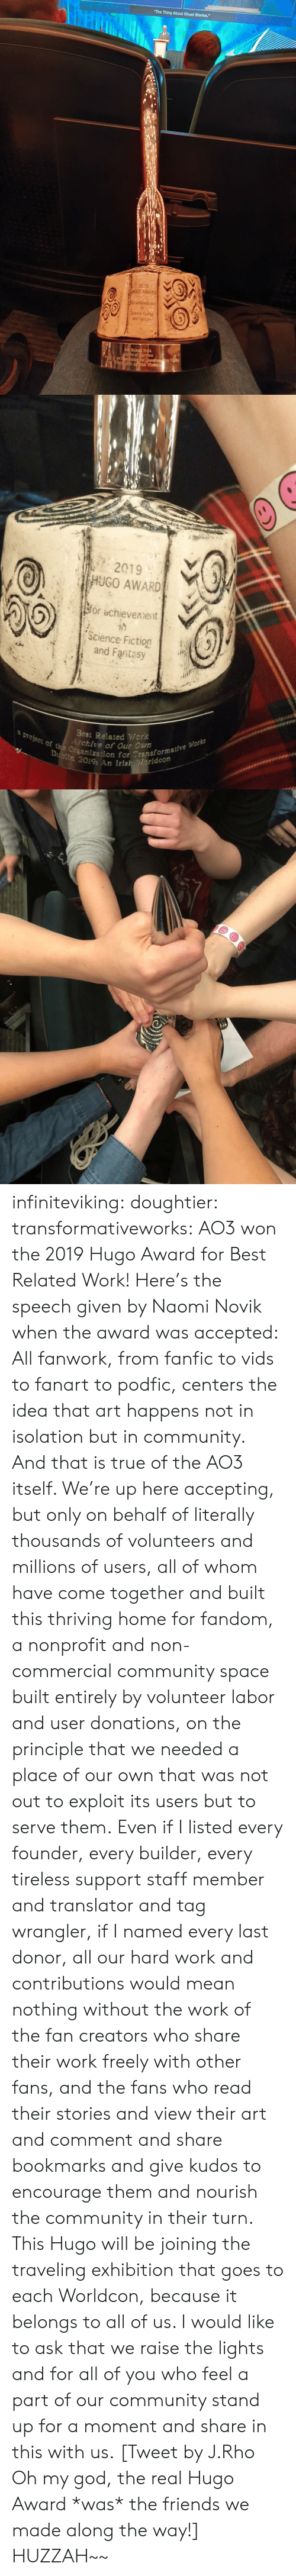 "Behalf: The Thing About Ghost Stories,""  2019  HUGO AWARD  Sor achieventt  Soence Fiction  and Fanta  BeRelate Wark  Aedre of Cur Own  arlketion for 1ransformacive Wcks  OA Kelsh Workde   a  2019  HUGO AWARD  or achievennent  (Science Fiction  and Faritasy  a project of the Organization for Transformative Works  Dubiln 2019: An Irish eridcon  Best Related Work  Archive of Our Own infiniteviking: doughtier:  transformativeworks:  AO3 won the 2019 Hugo Award for Best Related Work! Here's the speech given by Naomi Novik when the award was accepted:  All fanwork, from fanfic to vids to fanart to podfic, centers the idea that art happens not in isolation but in community. And that is true of the AO3 itself. We're up here accepting, but only on behalf of literally thousands of volunteers and millions of users, all of whom have come together and built this thriving home for fandom, a nonprofit and non-commercial community space built entirely by volunteer labor and user donations, on the principle that we needed a place of our own that was not out to exploit its users but to serve them. Even if I listed every founder, every builder, every tireless support staff member and translator and tag wrangler, if I named every last donor, all our hard work and contributions would mean nothing without the work of the fan creators who share their work freely with other fans, and the fans who read their stories and view their art and comment and share bookmarks and give kudos to encourage them and nourish the community in their turn. This Hugo will be joining the traveling exhibition that goes to each Worldcon, because it belongs to all of us. I would like to ask that we raise the lights and for all of you who feel a part of our community stand up for a moment and share in this with us.   [Tweet by J.Rho Oh my god, the real Hugo Award *was* the friends we made along the way!]  HUZZAH~~"